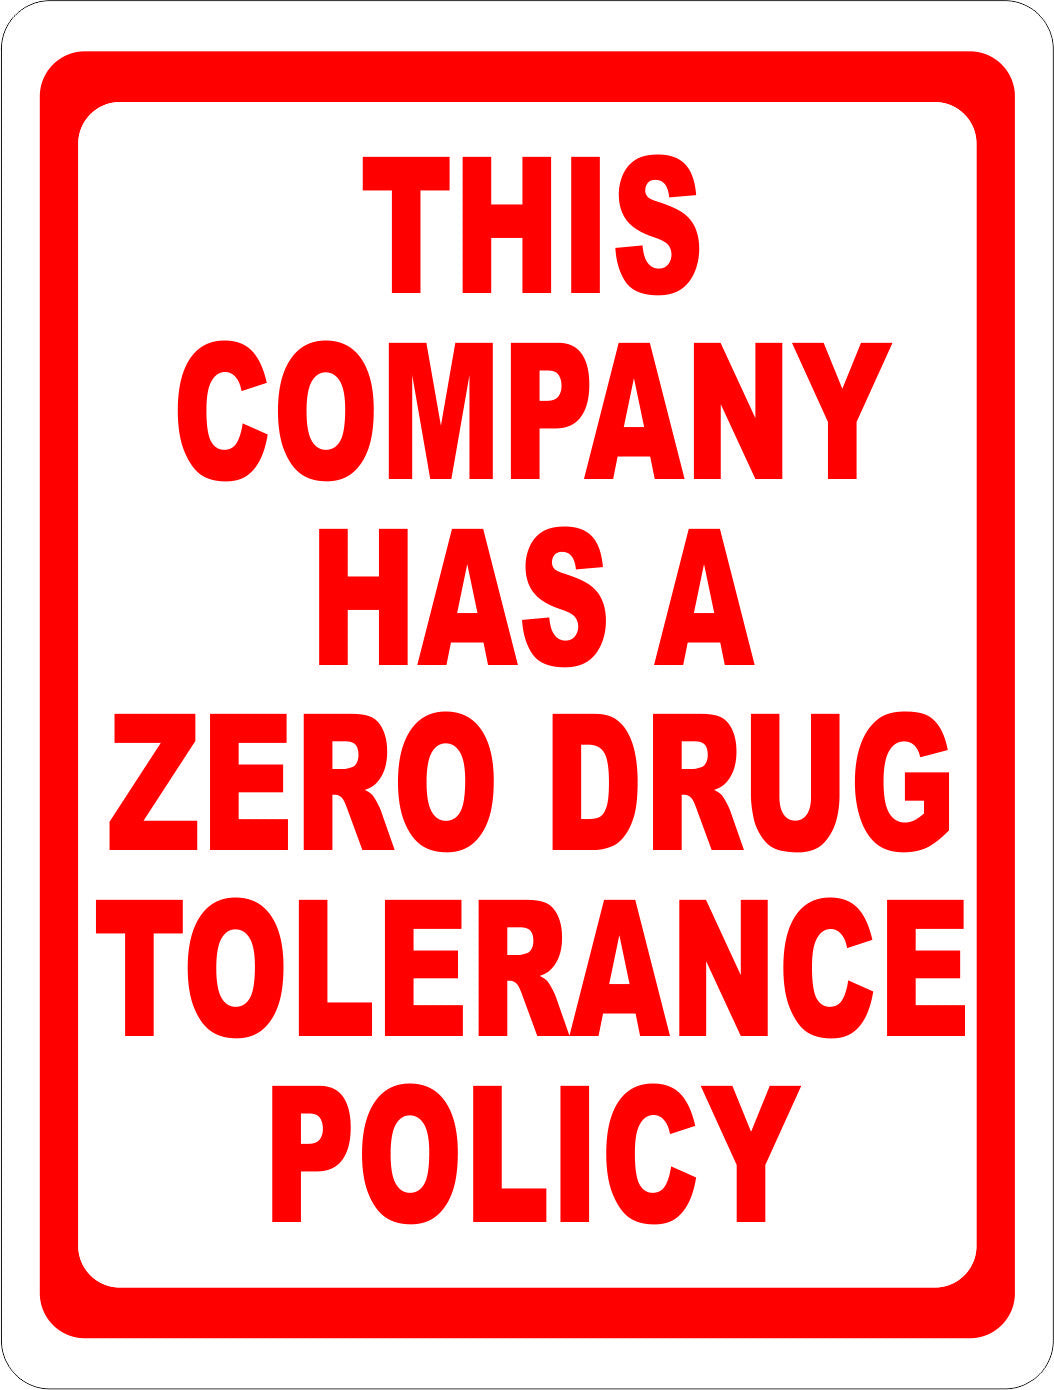 This Company Has a Zero Drug Tolerance Policy Sign - Signs & Decals by SalaGraphics